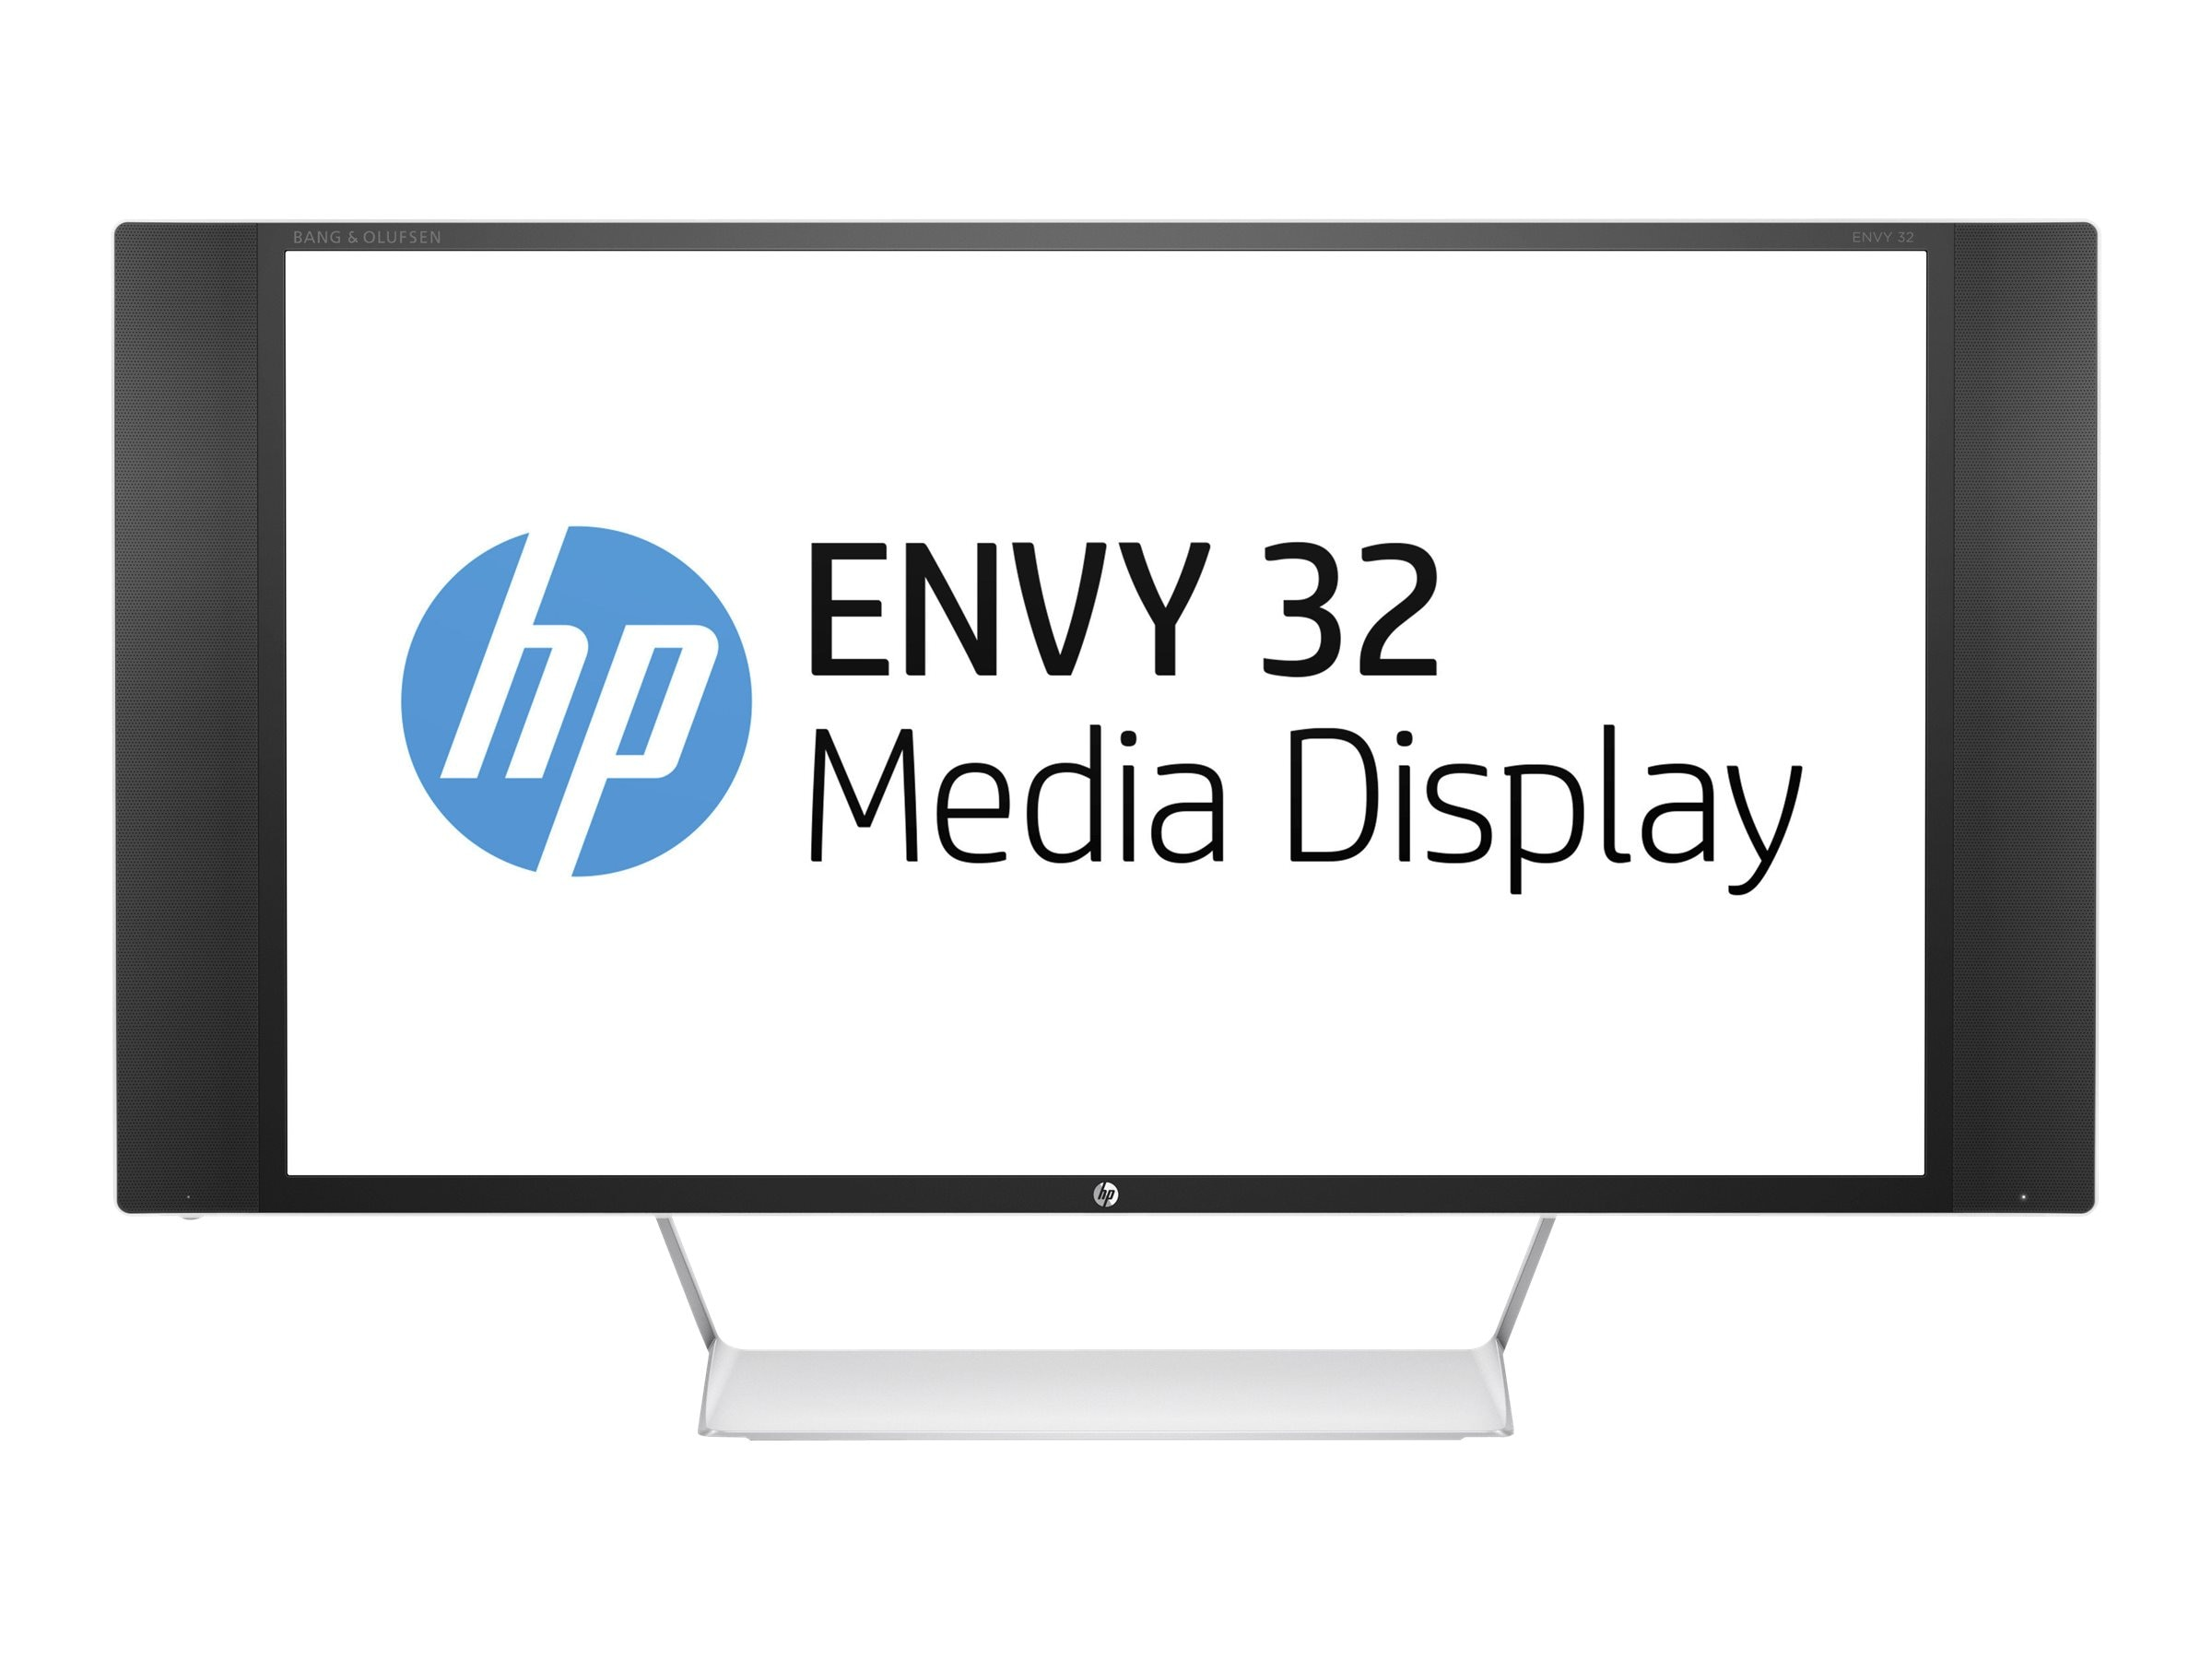 HP 32 Envy Quad HD LED-LCD Media Display with Bang and Olufsen, Black